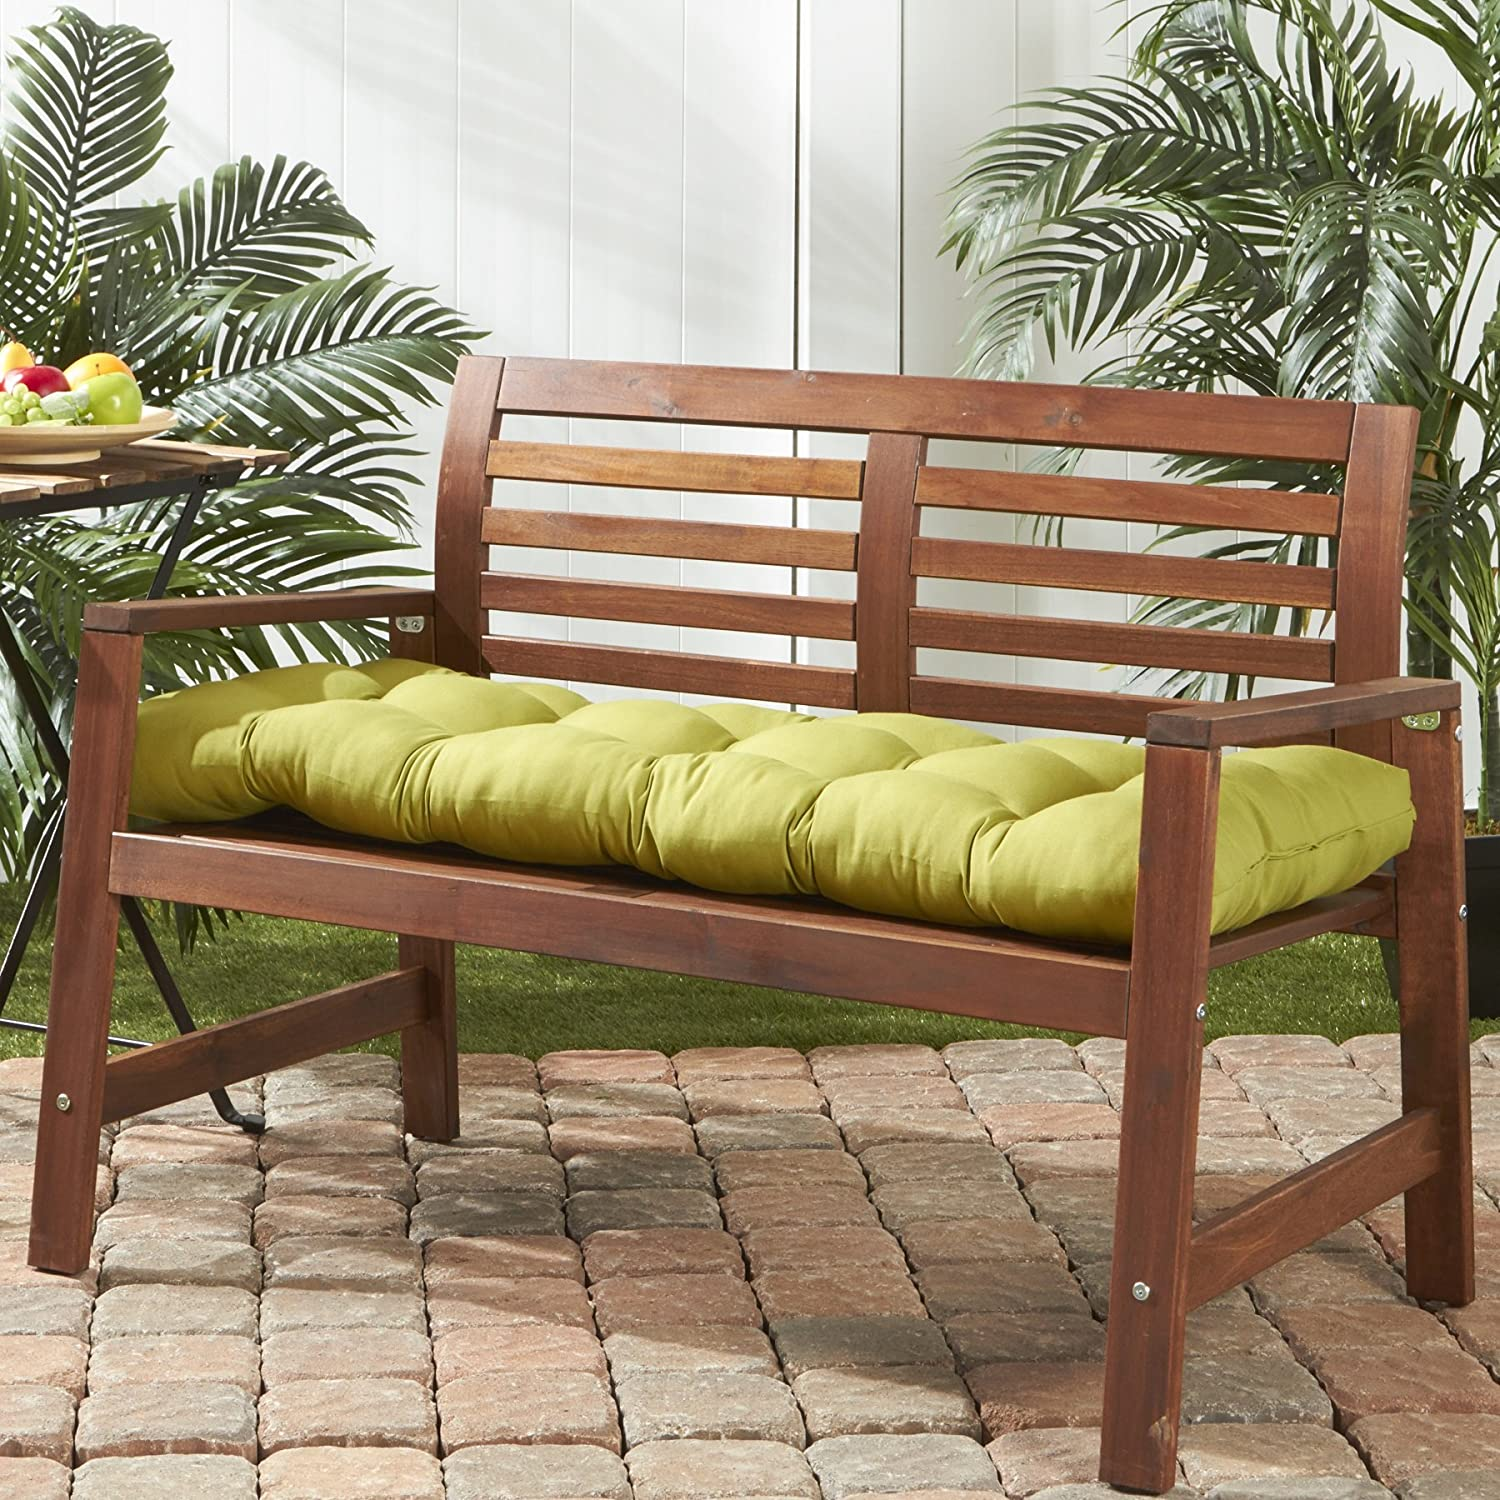 Amazon.com: Greendale Home Fashions 51 Inch Indoor/Outdoor Bench Cushion,  Kiwi: Home U0026 Kitchen